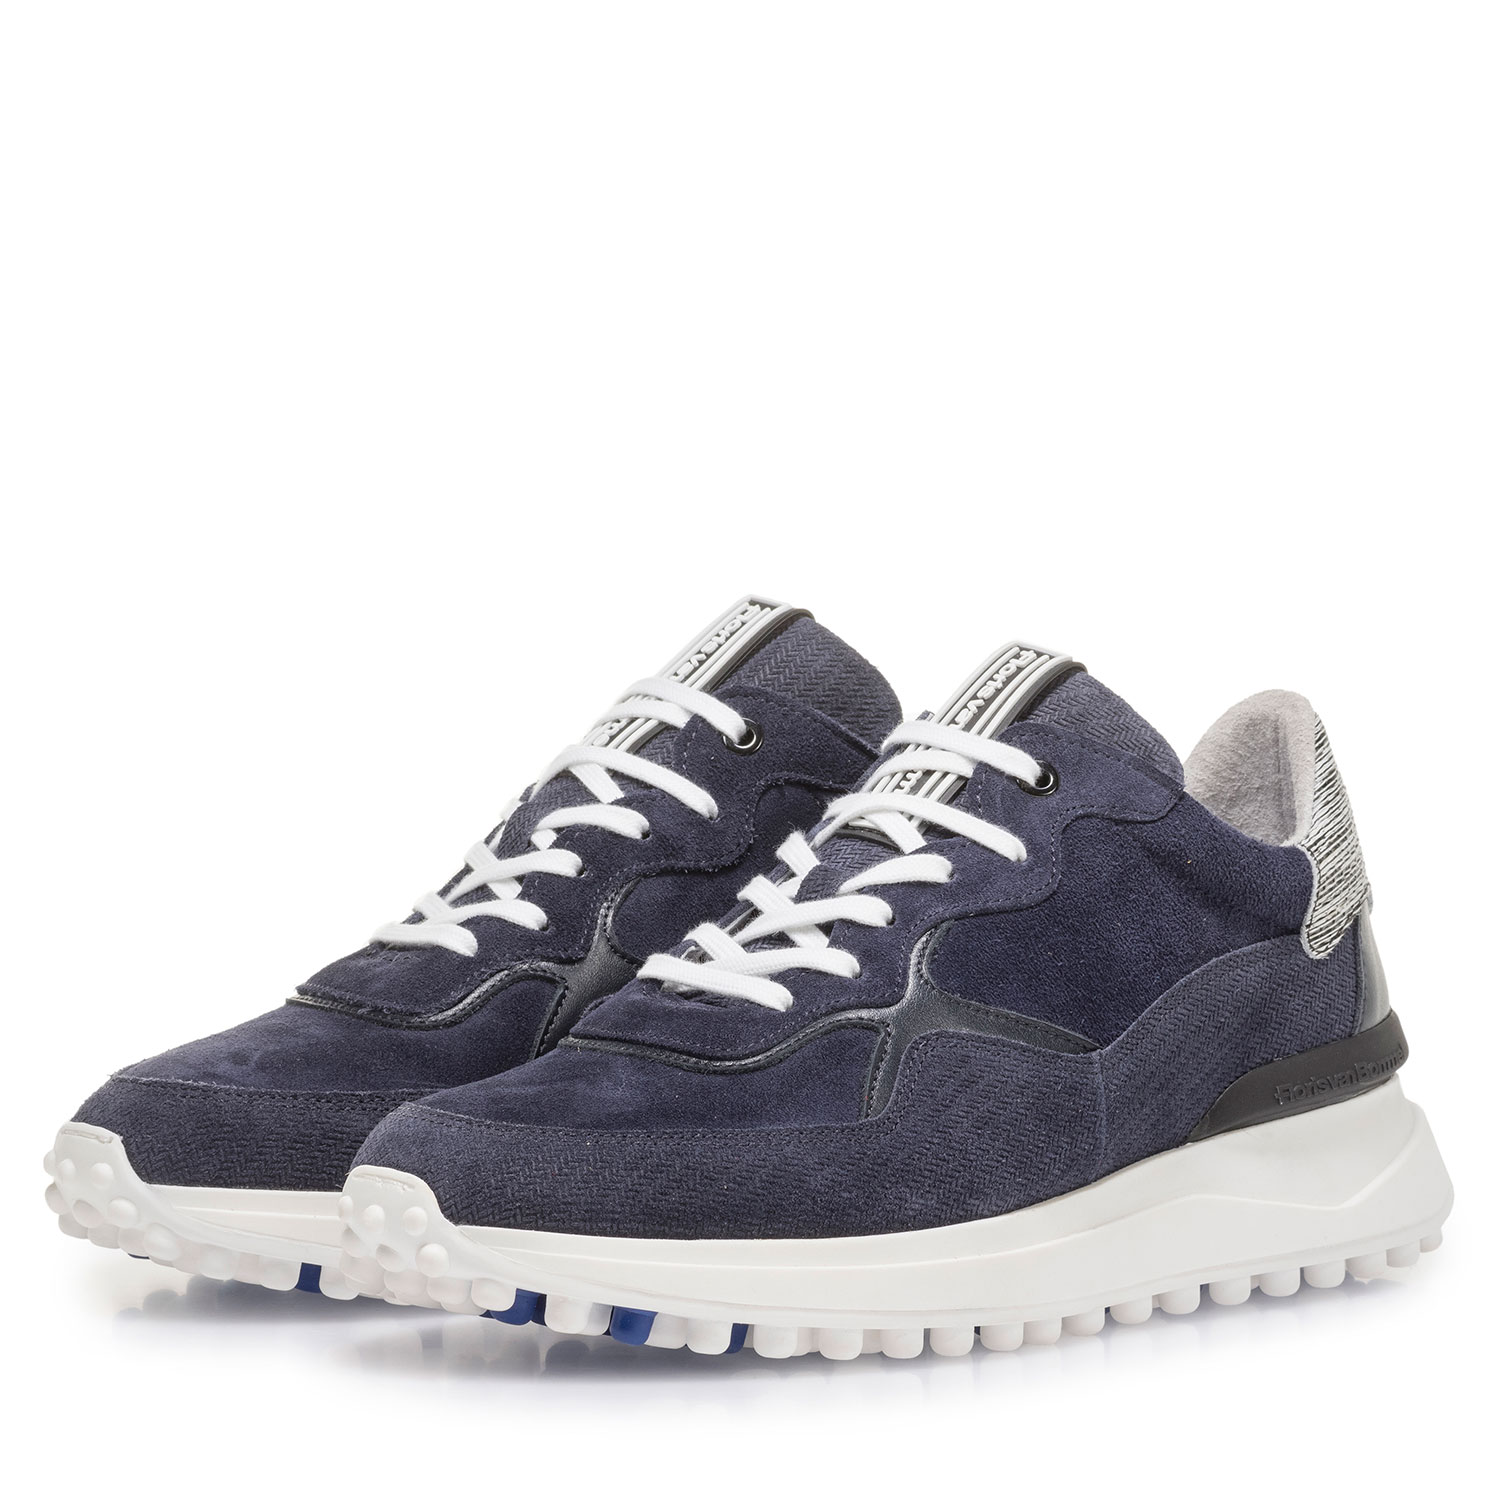 16301/15 - Blue suede leather sneaker with print